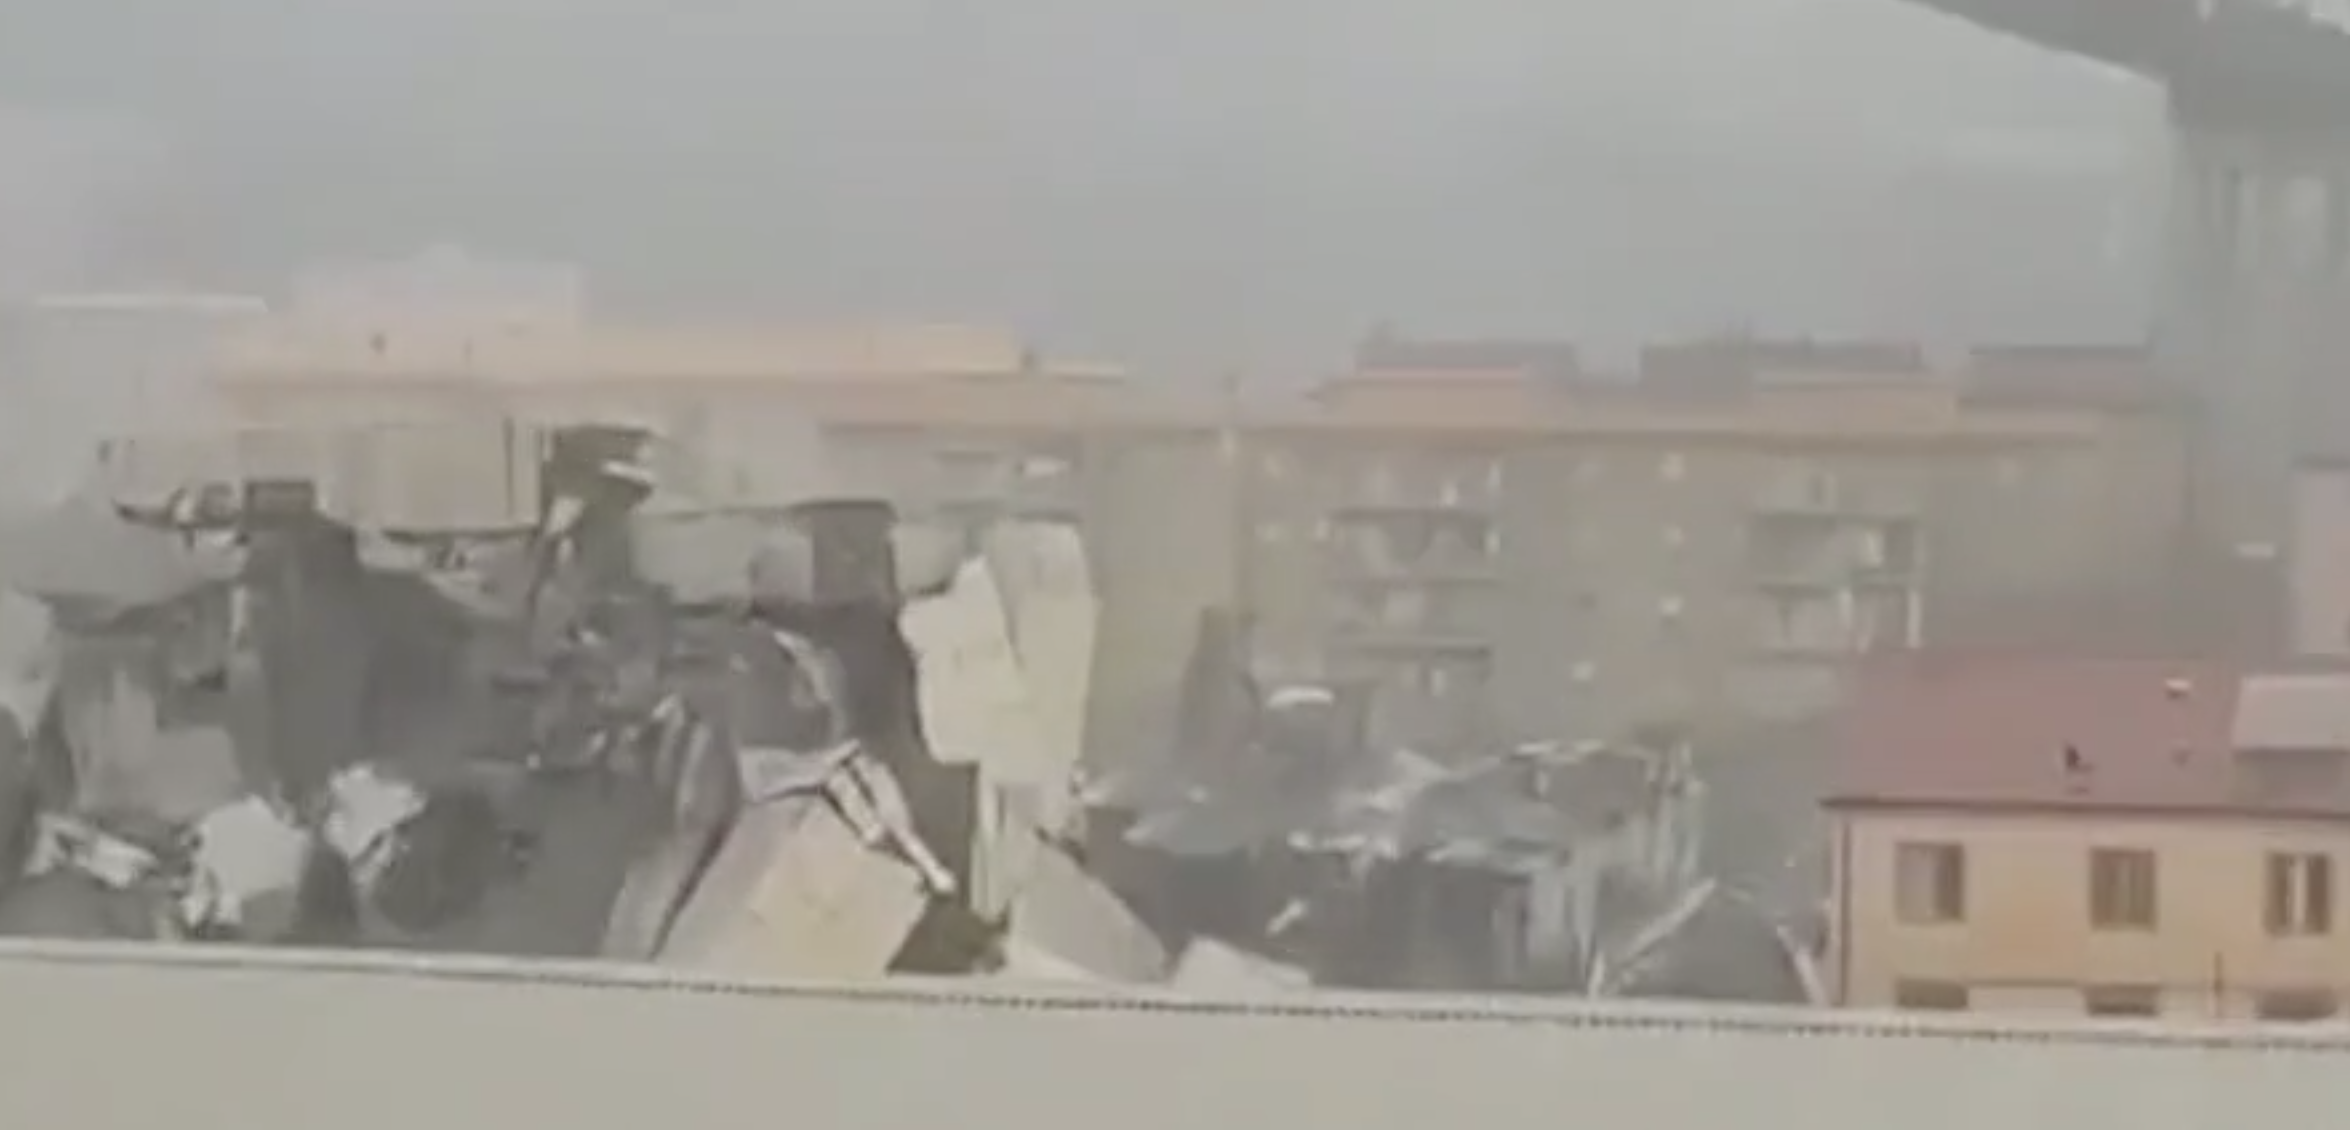 Eyewitness footage shows the remains of the collapsed bridge in Genoa. (Facebook/sosemergenza)